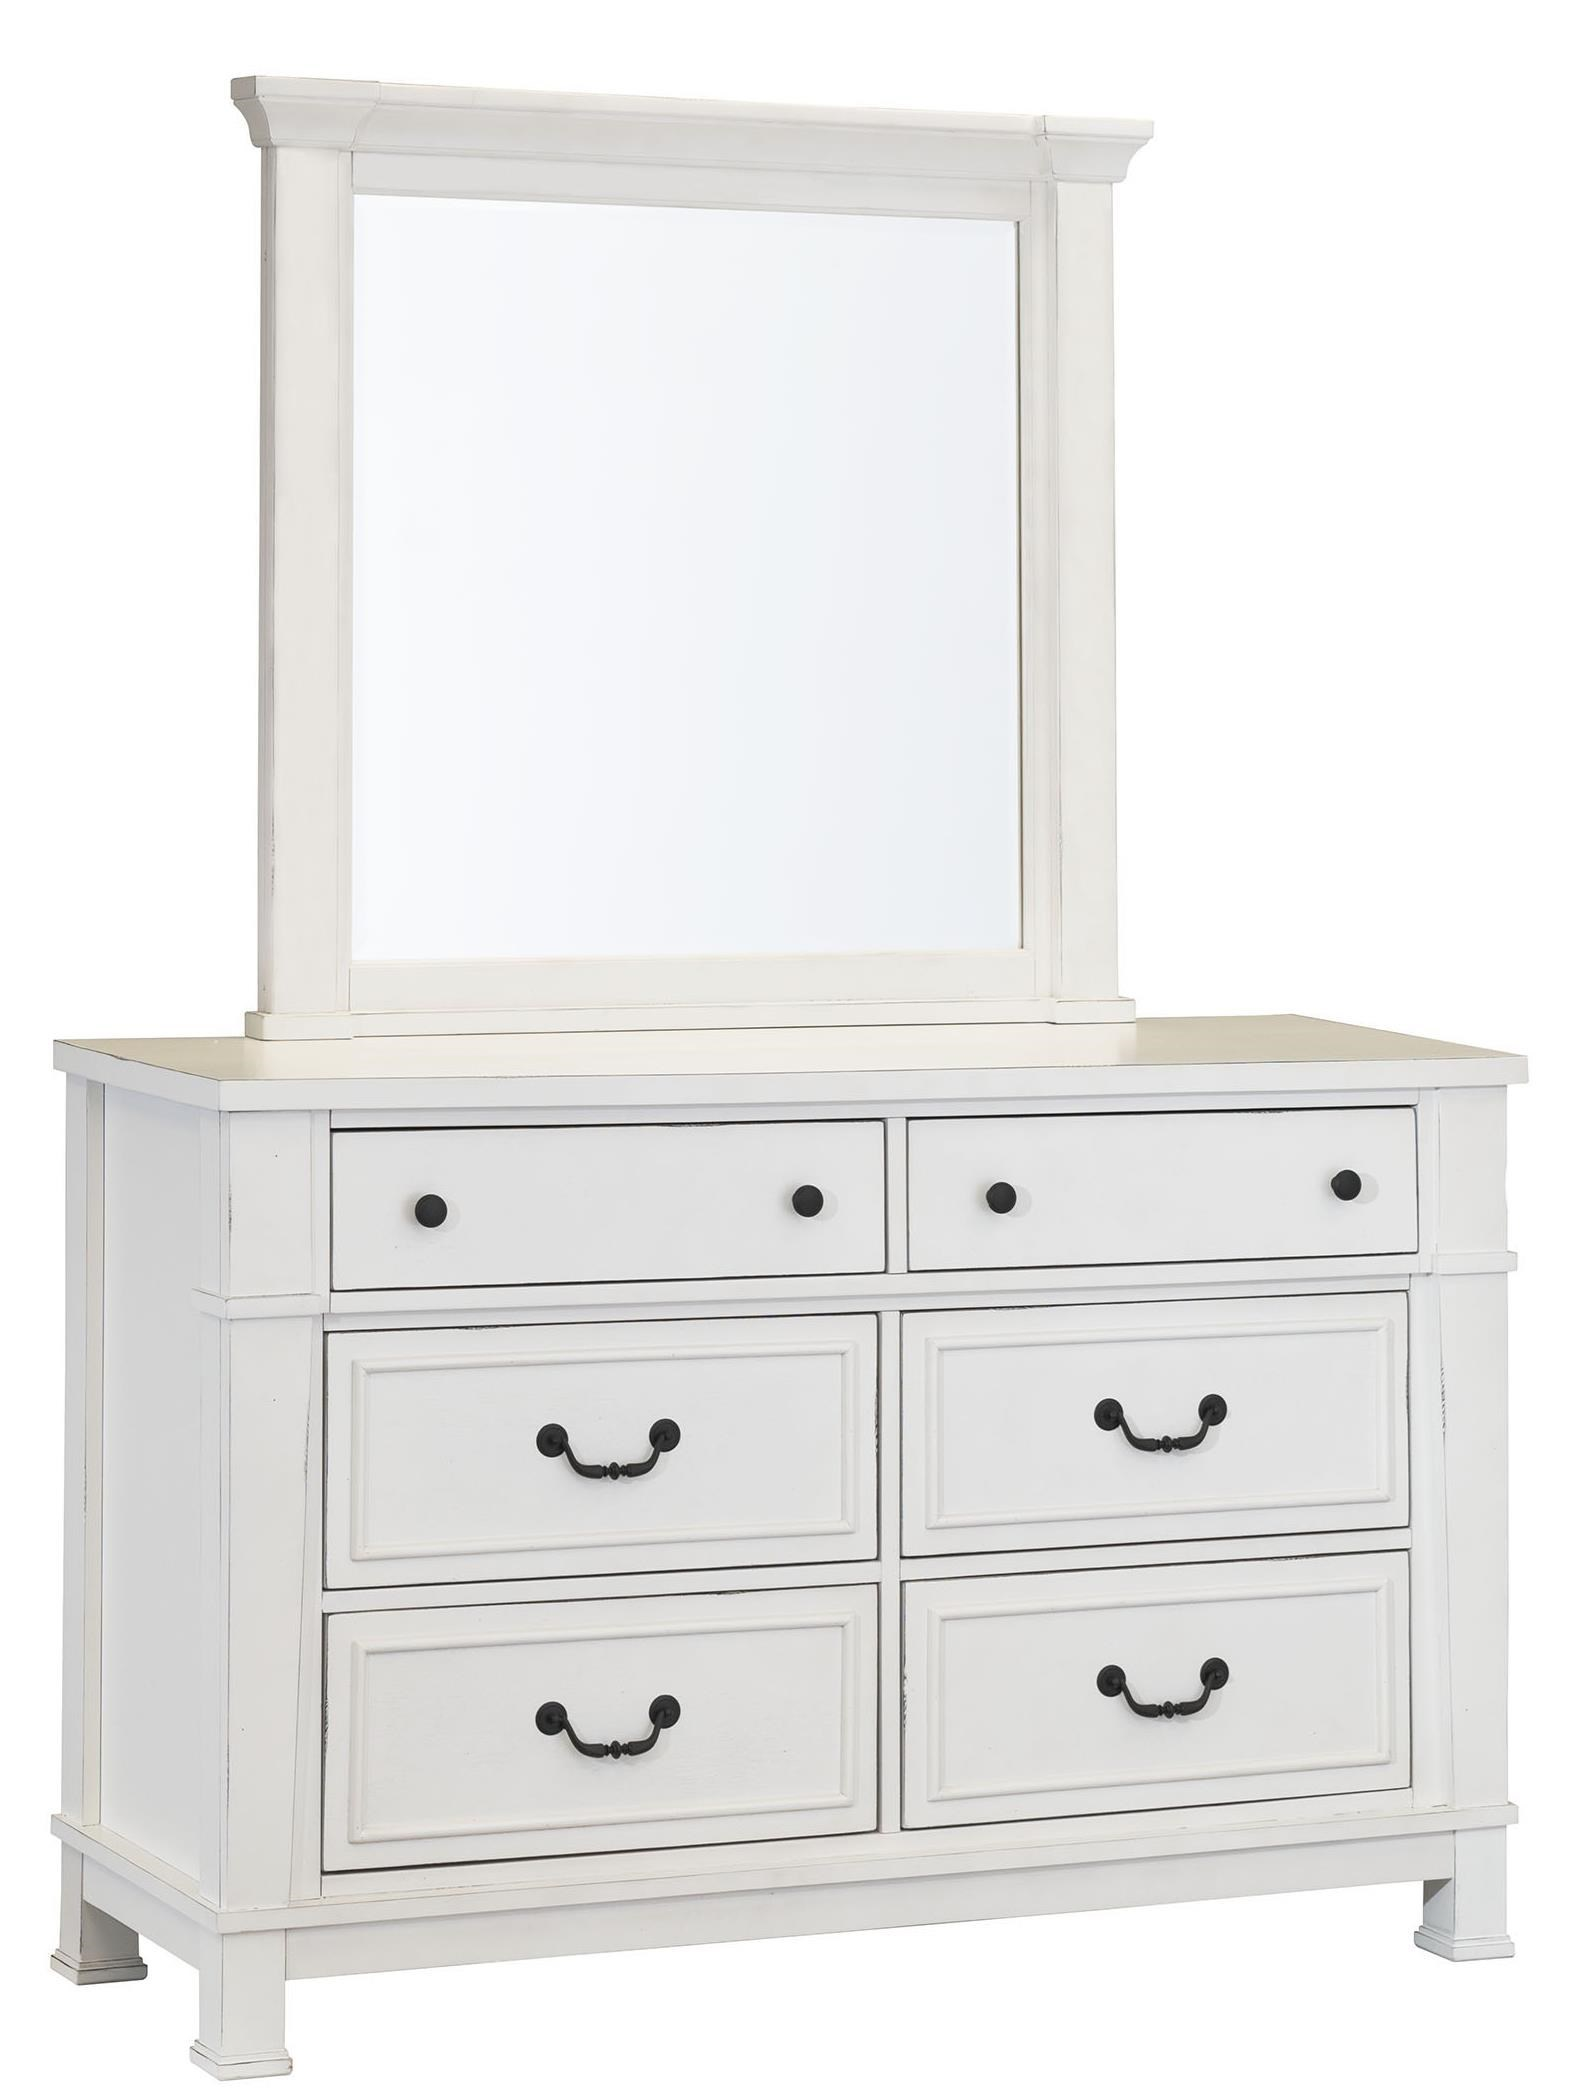 Standard Furniture Chesapeake Bay Youth Bedroom Vintage White Dresser And Mirror Set Royal Furniture Dresser Mirror Sets